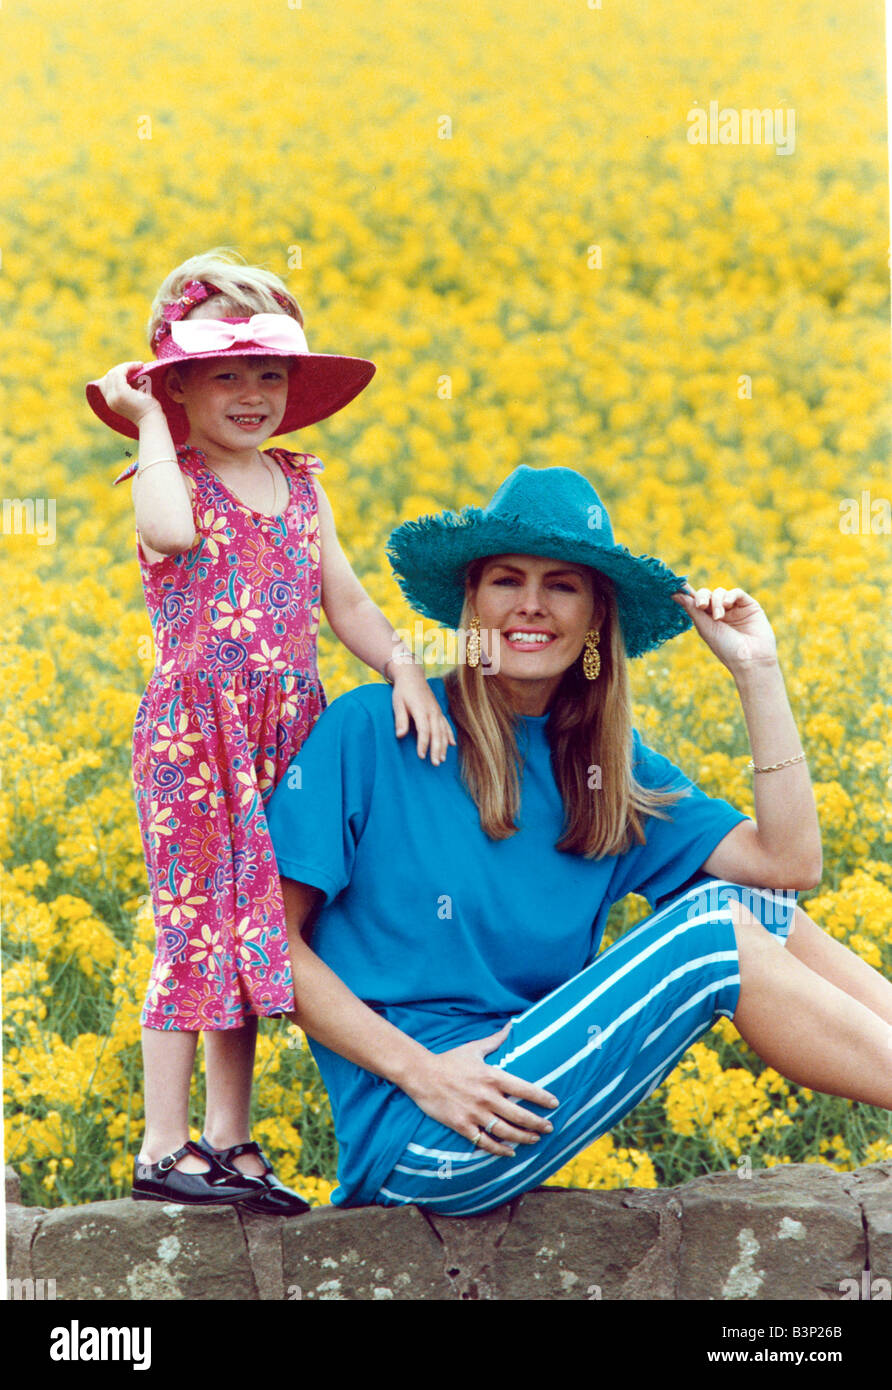 78771d297d6 ... wife Lorraine Brewster and daughter Siobhan aged 4 Mother wearing all  blue hat t shirt and white striped shorts child wearing flowery summer dress  and ...